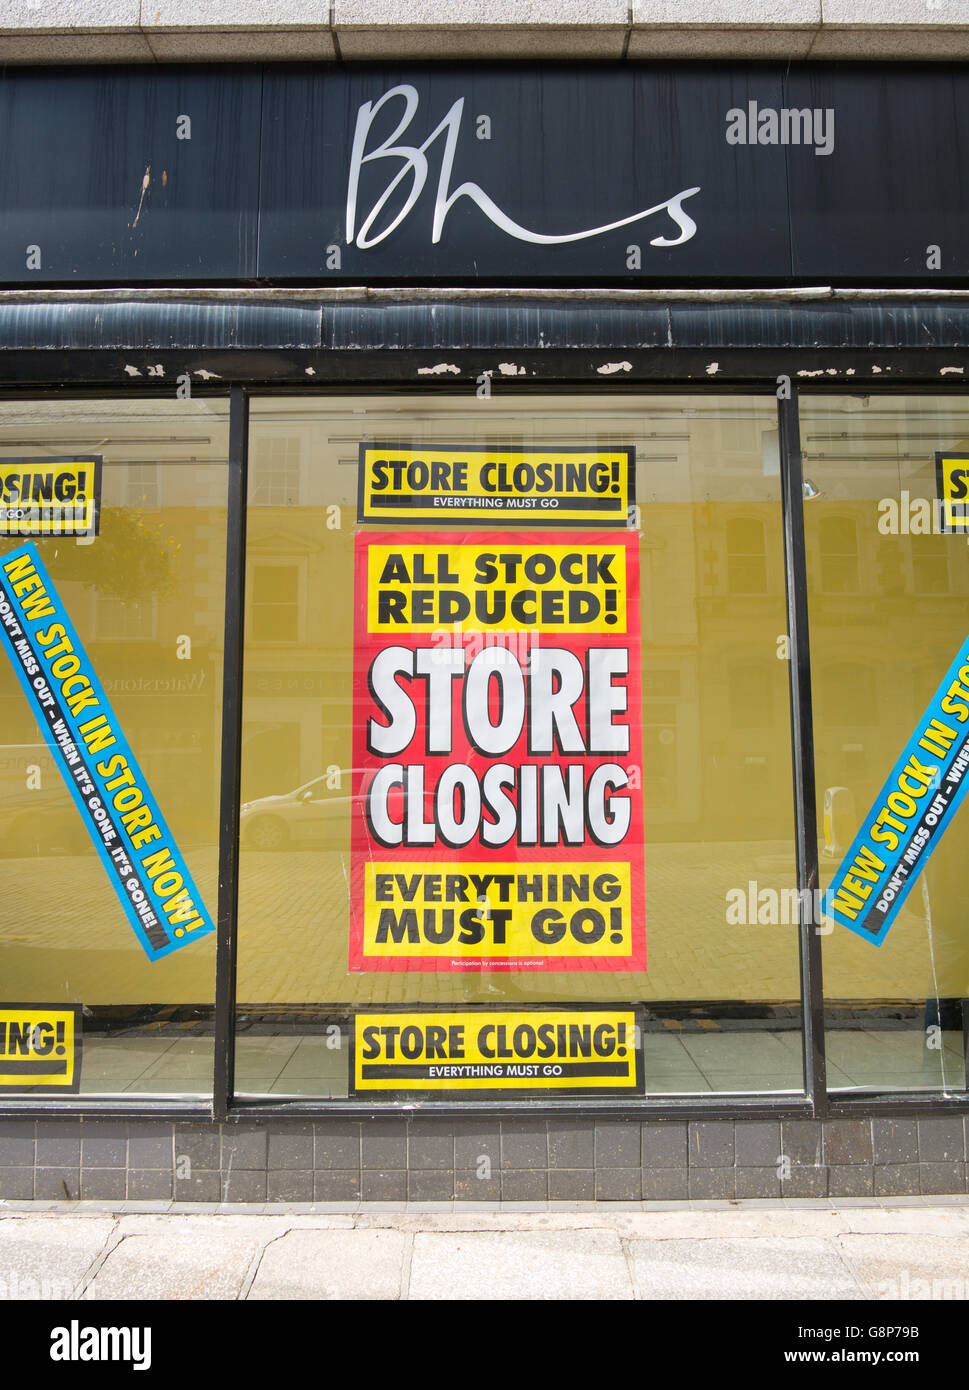 BHS store closing everything must go sign in shop window, Truro, Cornwall UK. - Stock Image